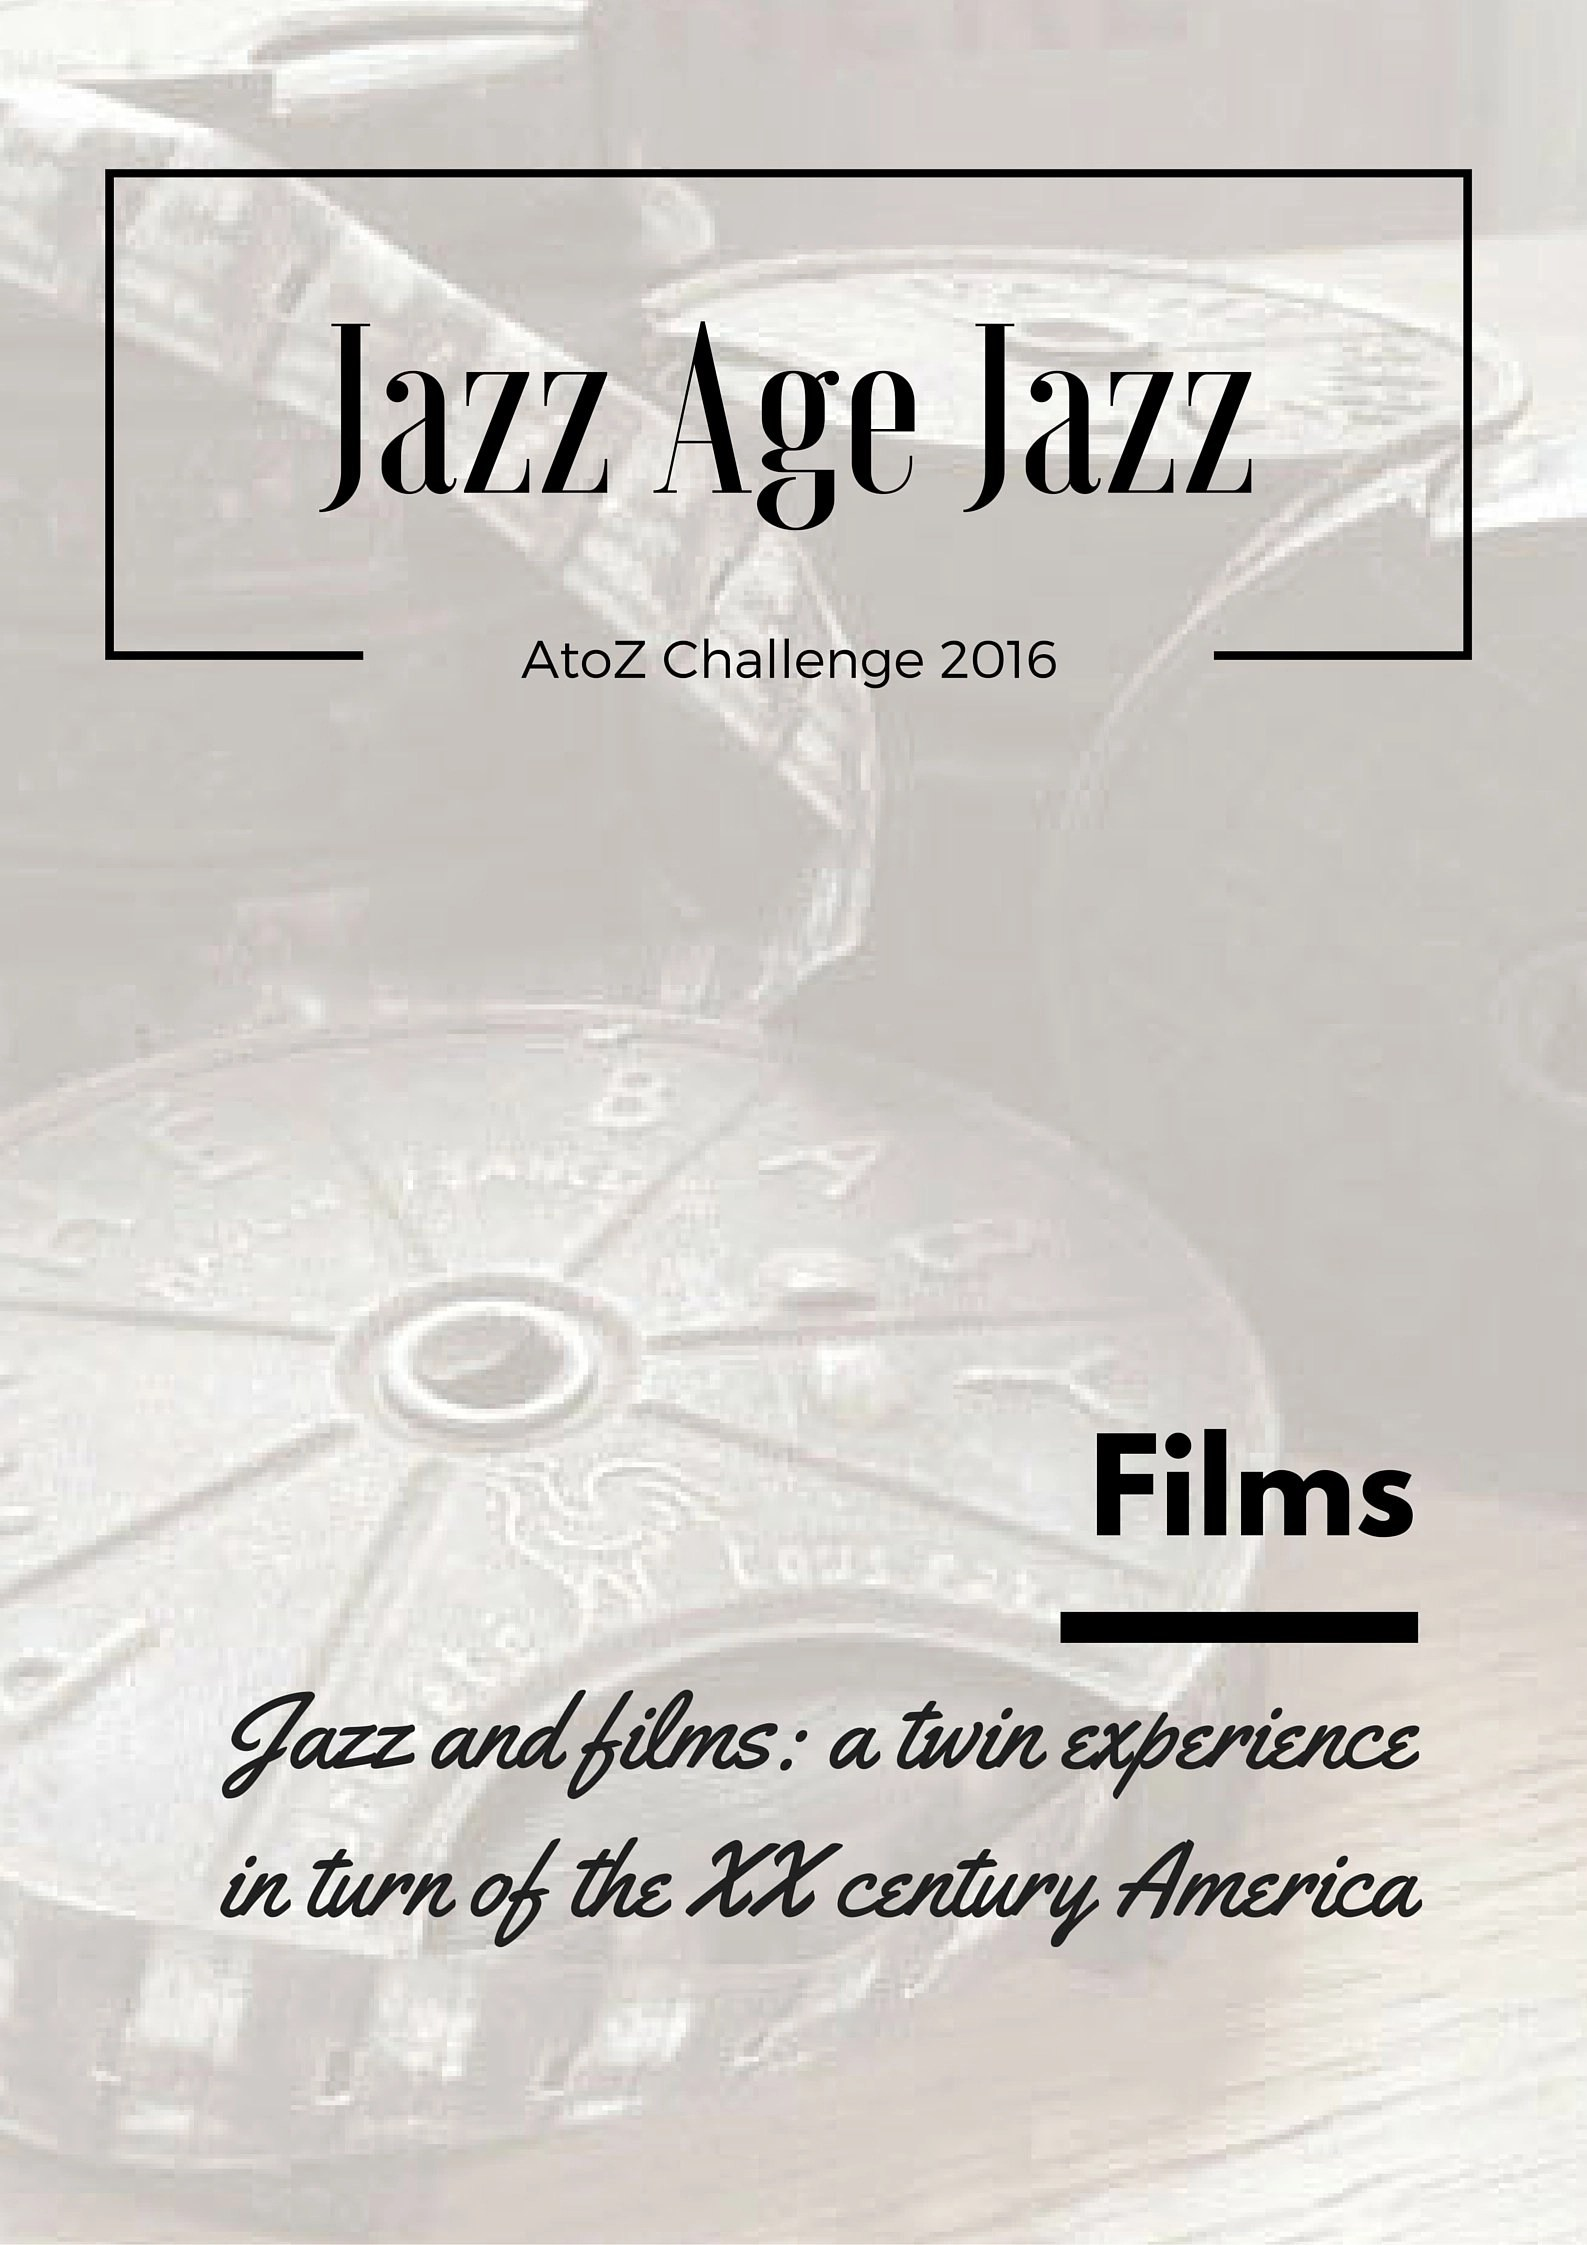 Jazz Age Jazz - Films: jazz and films, a twin experience in turn of the XX century America